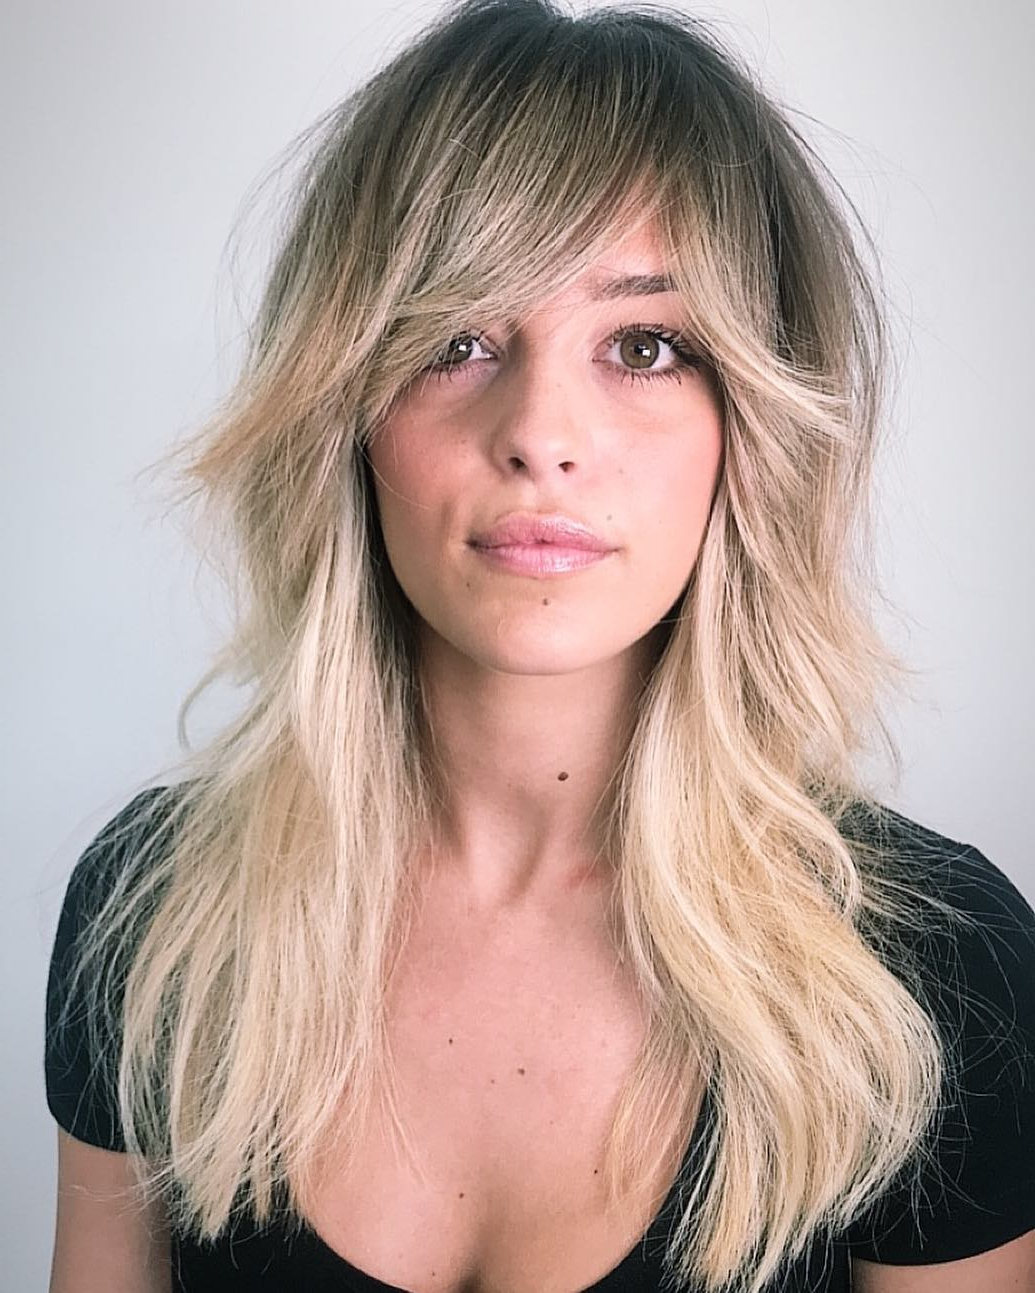 The Most Instagrammable Hairstyles With Bangs In 2019 For Favorite Shaggy Chestnut Medium Length Hairstyles (View 11 of 20)